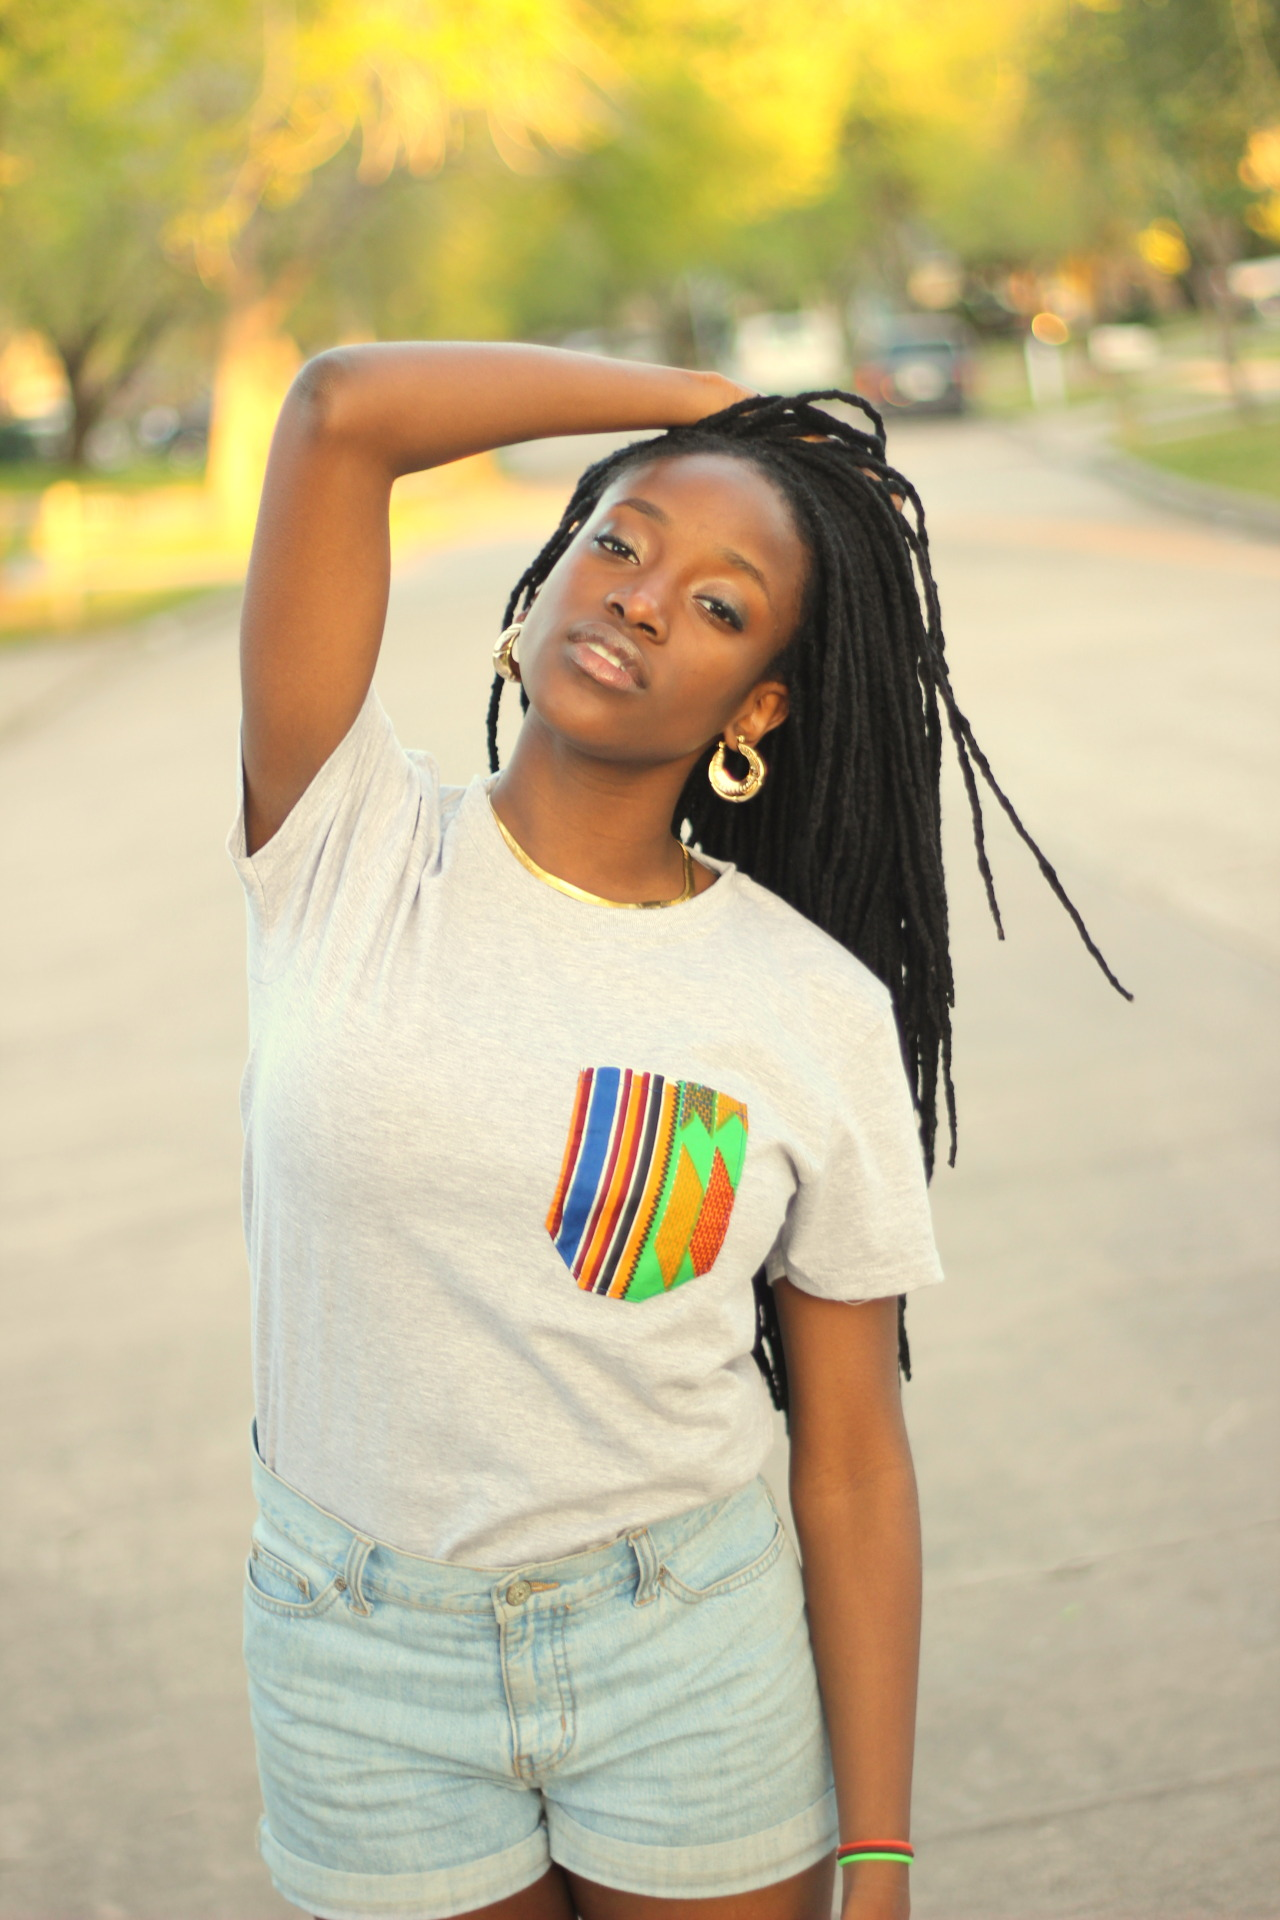 blackfashion:  Briana Ekhator, 18, Houston, TX SHIRT: Voguish TrendZ Pocket T-Shirt SITE: http://www.voguishtrendz.bigcartel.com BLOG: http://www.voguishtrendz.tumblr.com  Submitted by: Isis Collins, Owner, Founder, & Head Designer of VT Photographer: Tank Akinbayo